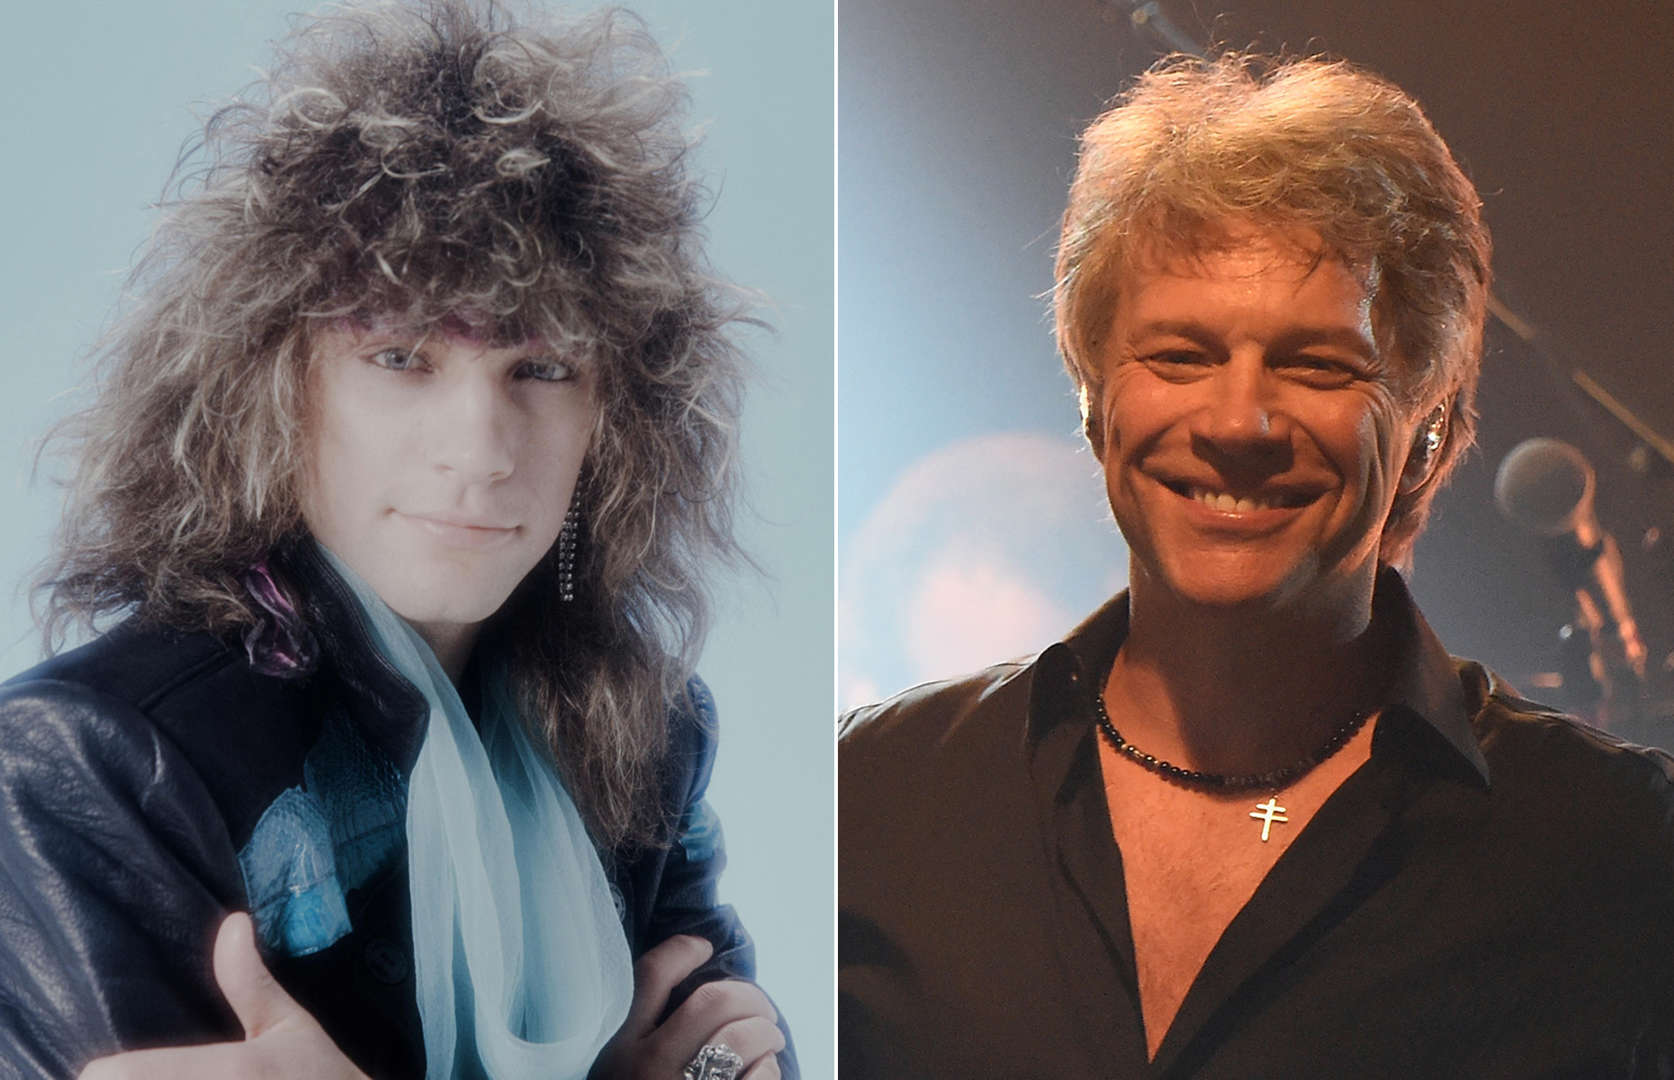 Celeb crushes of the '80s: Then and now